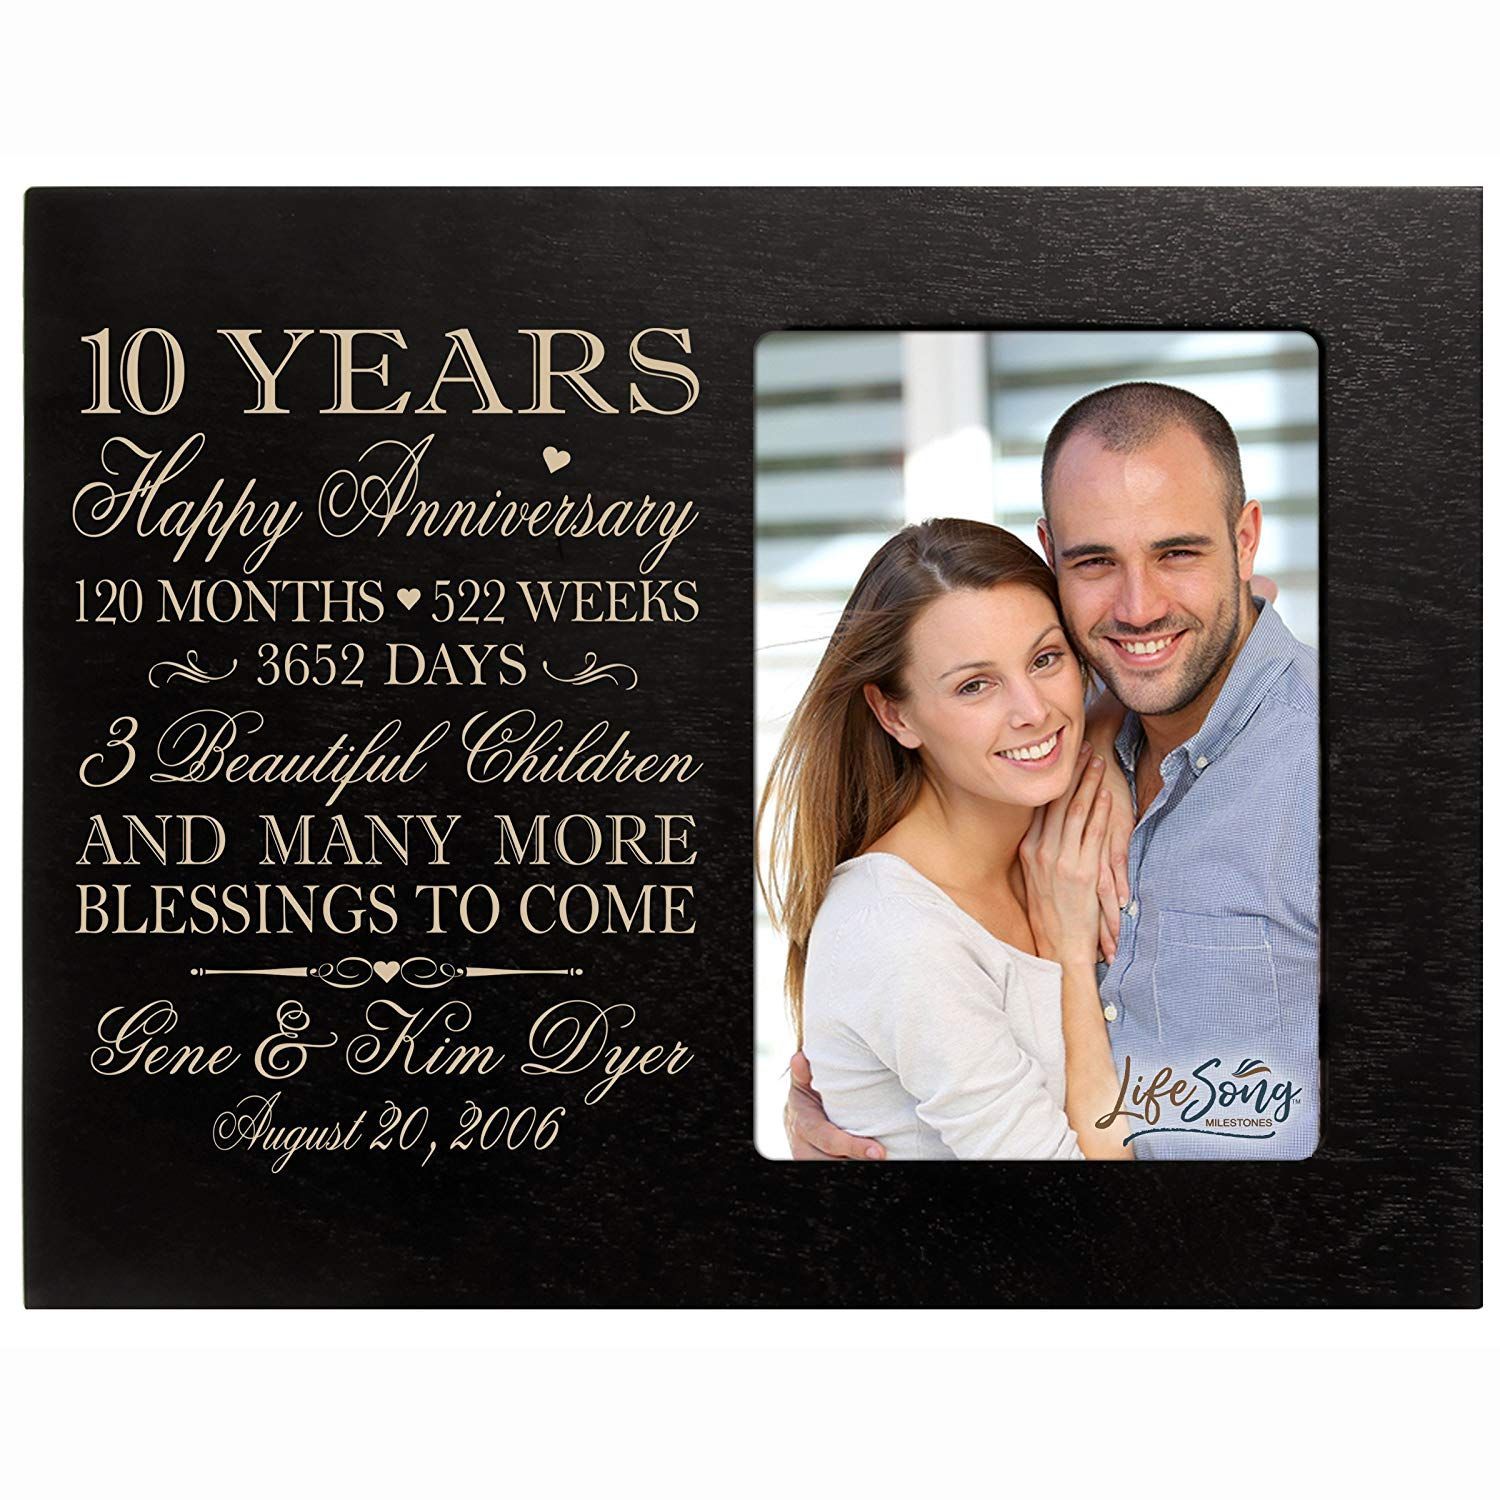 10th Anniversary Gifts For Him Under 60 10th Anniversary Gifts 10 Year Wedding Anniversary Gift Engraved Picture Frames